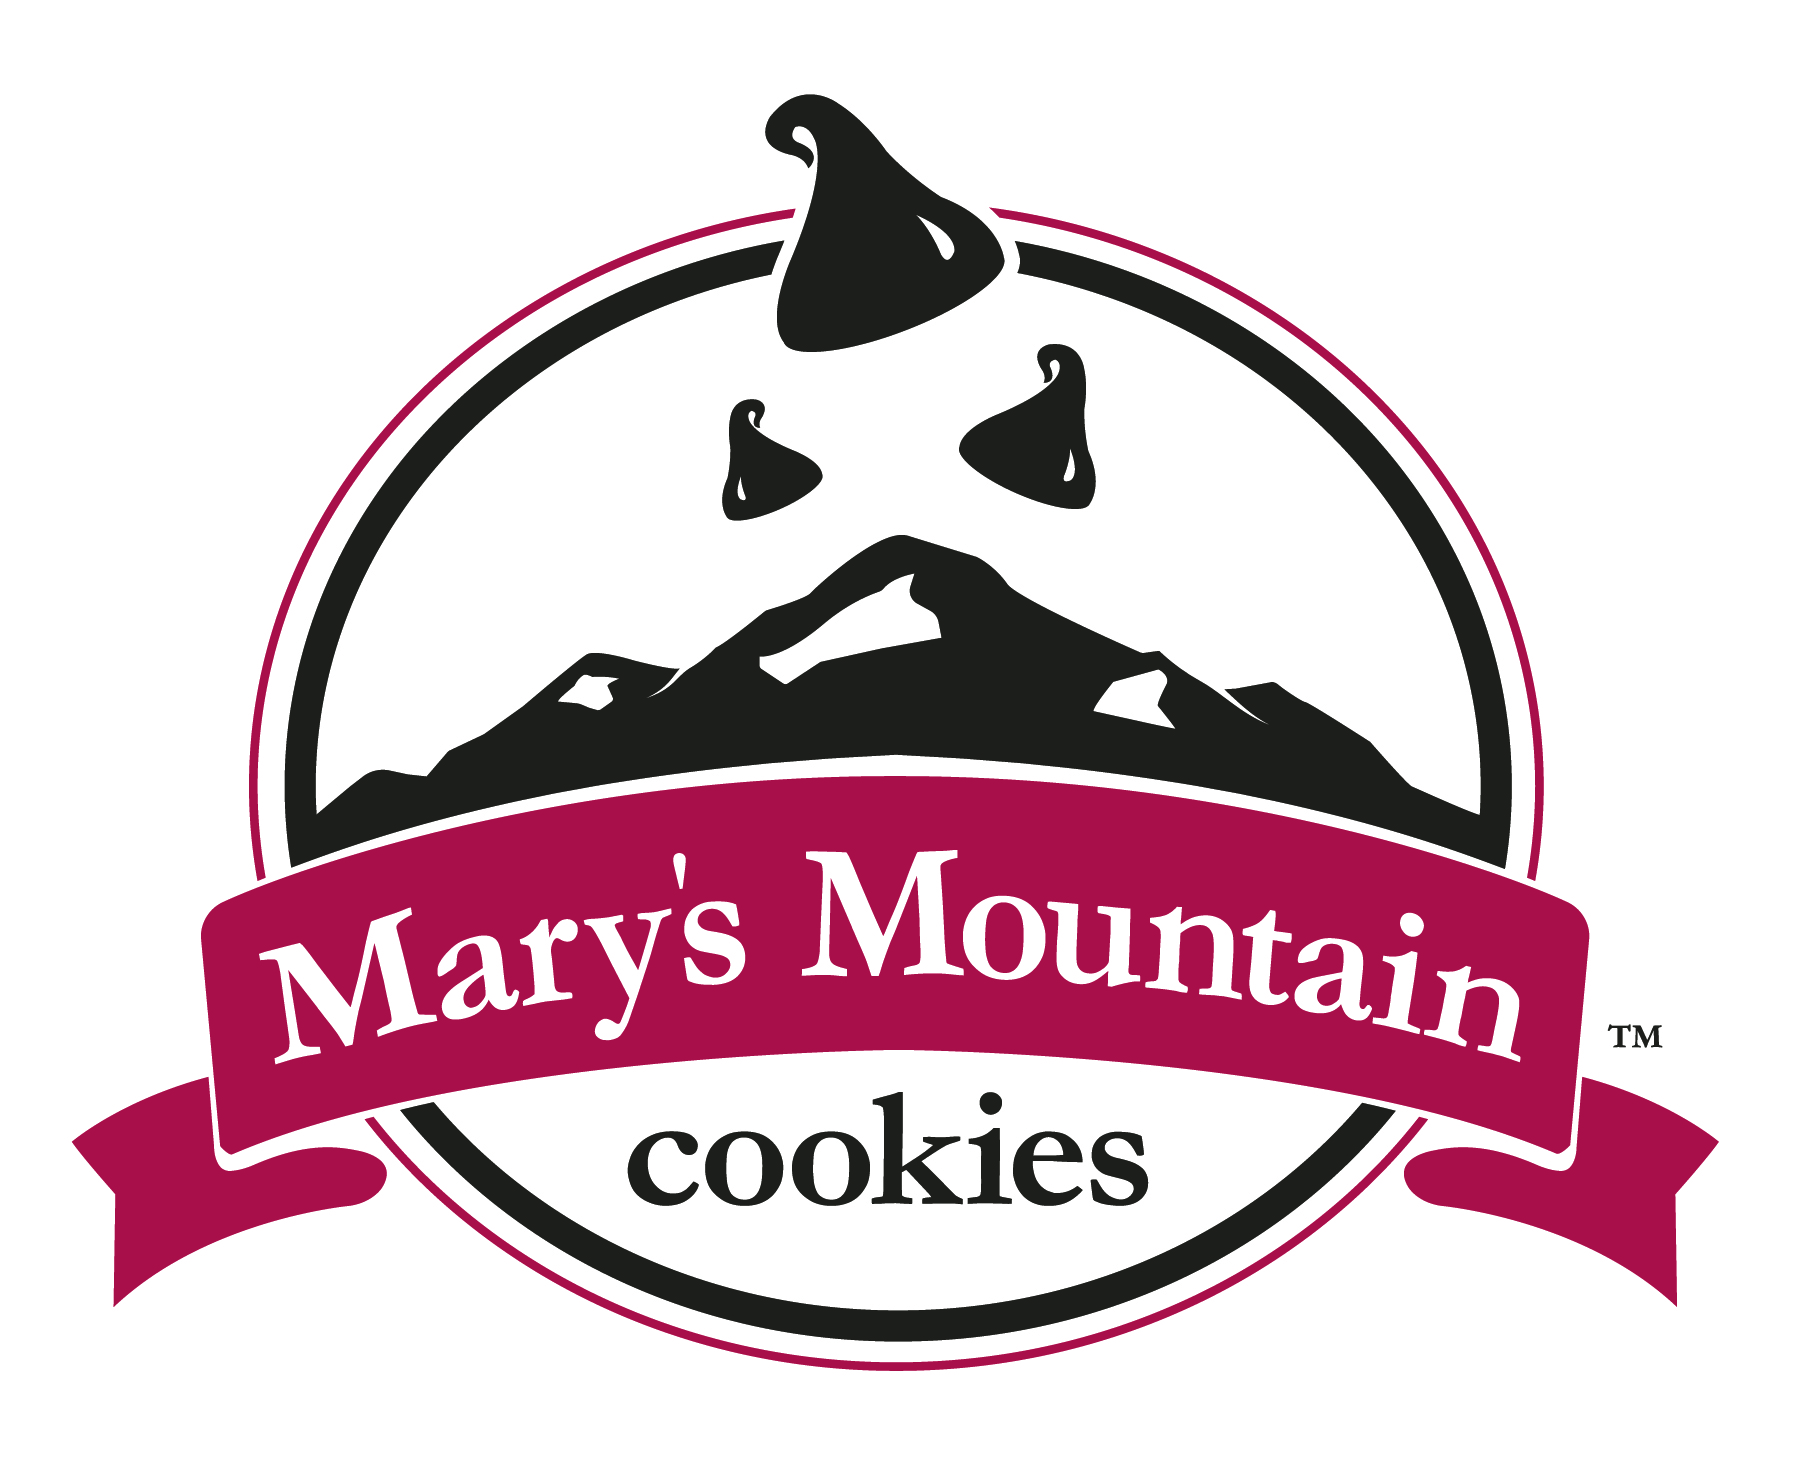 Mary's Mountain Cookies